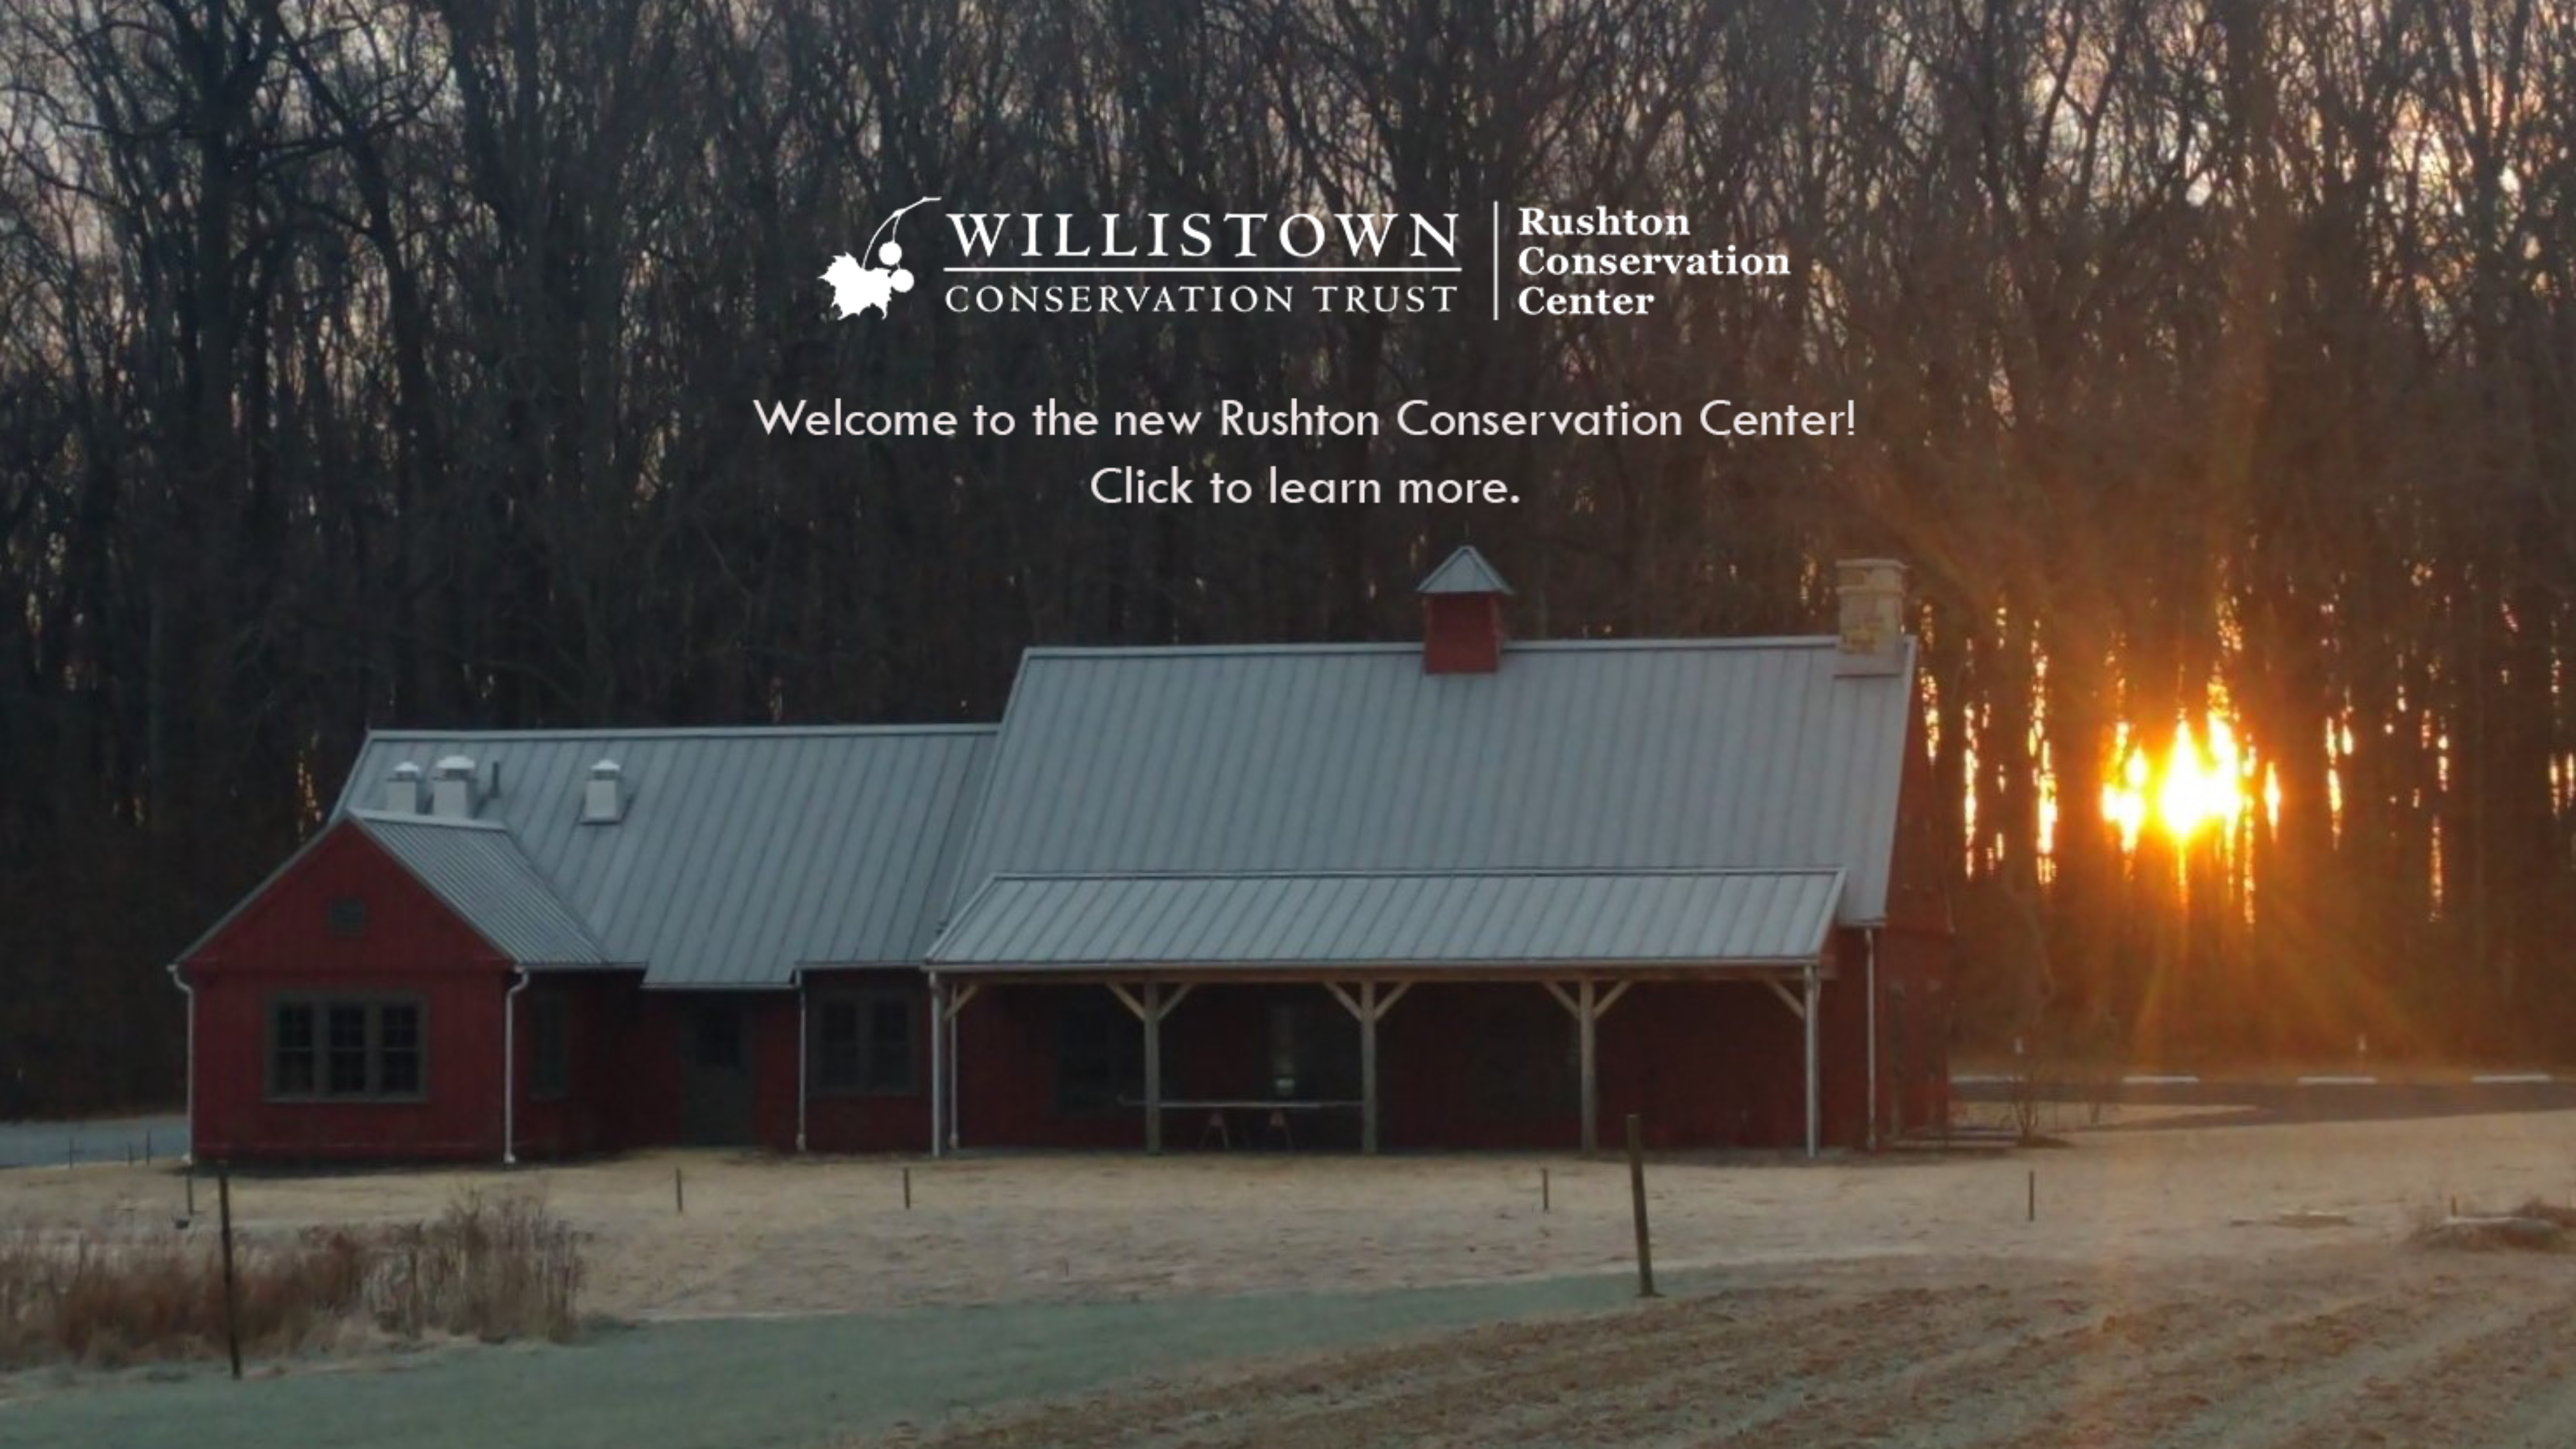 Welcome to the New Rushton Conservation Center - Bringing together our community of conservationists.